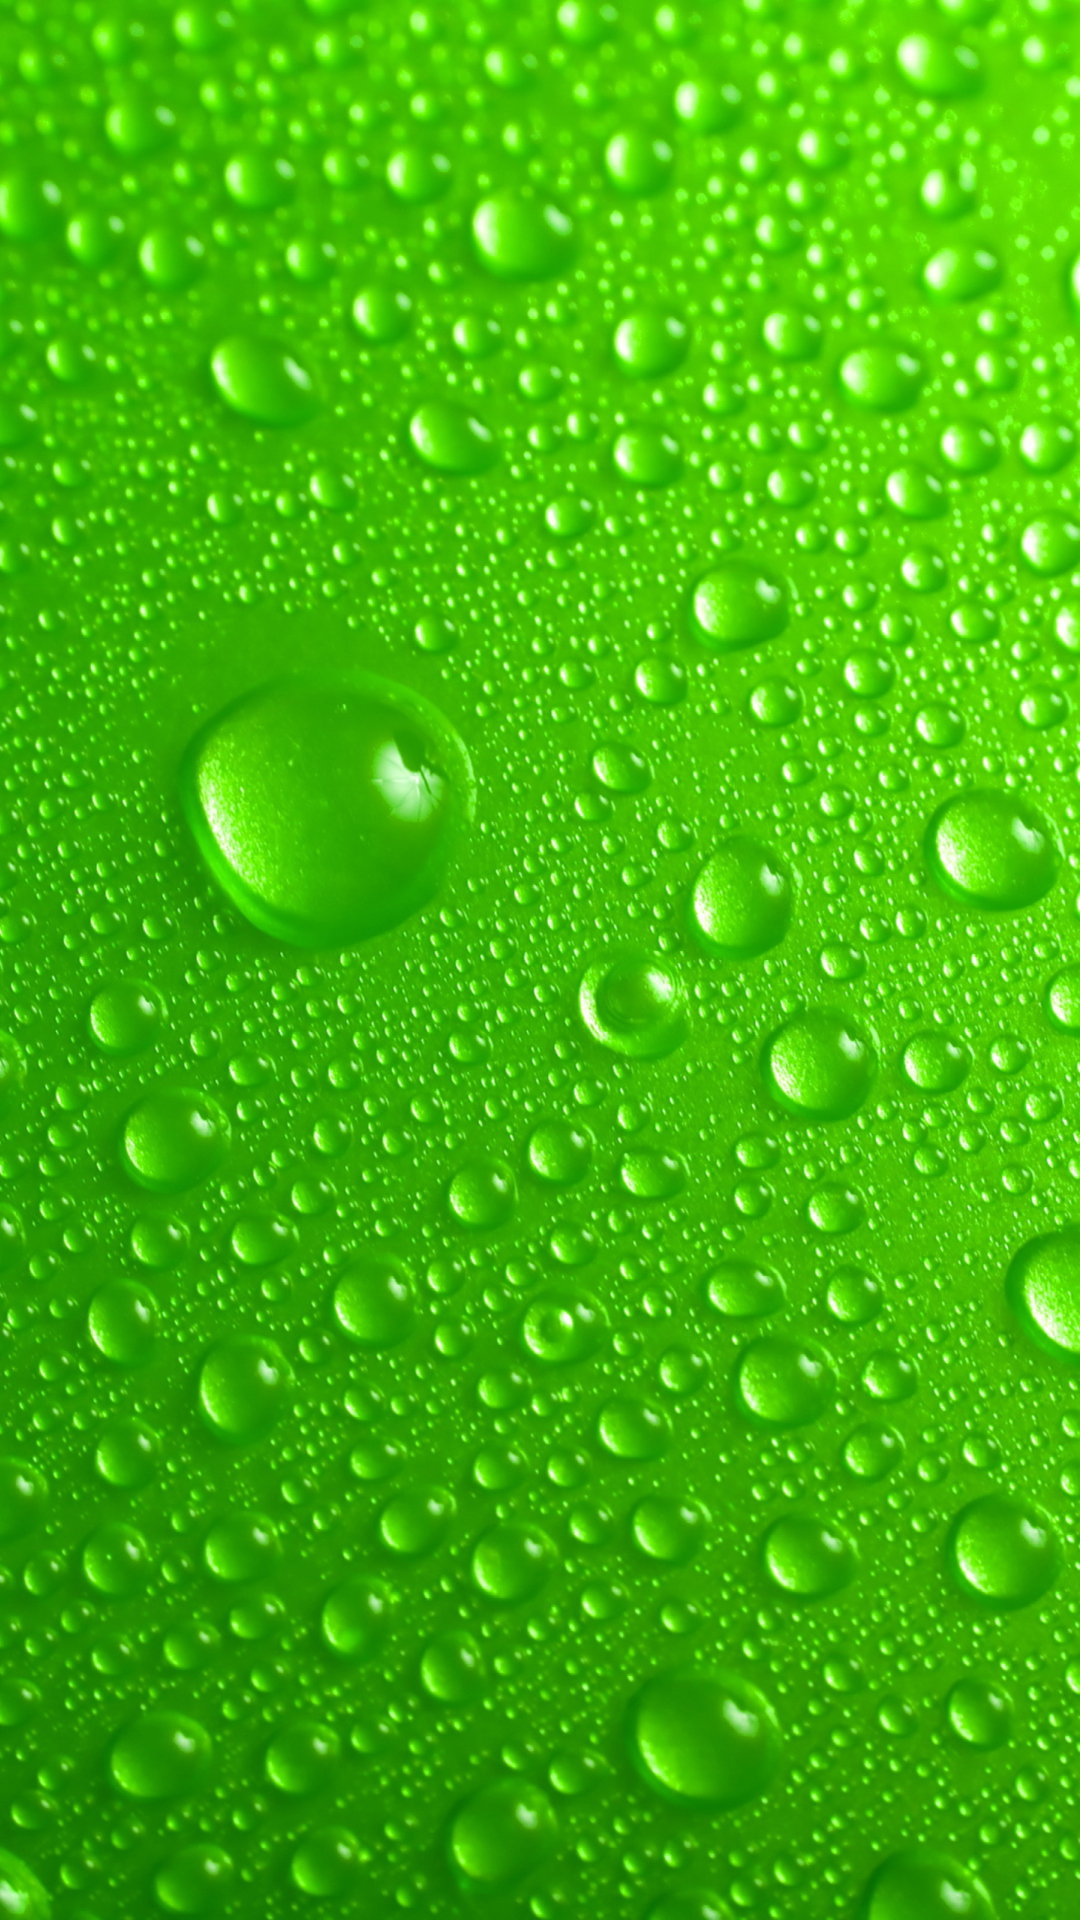 Green Water Drops Wallpaper for 1080x1920